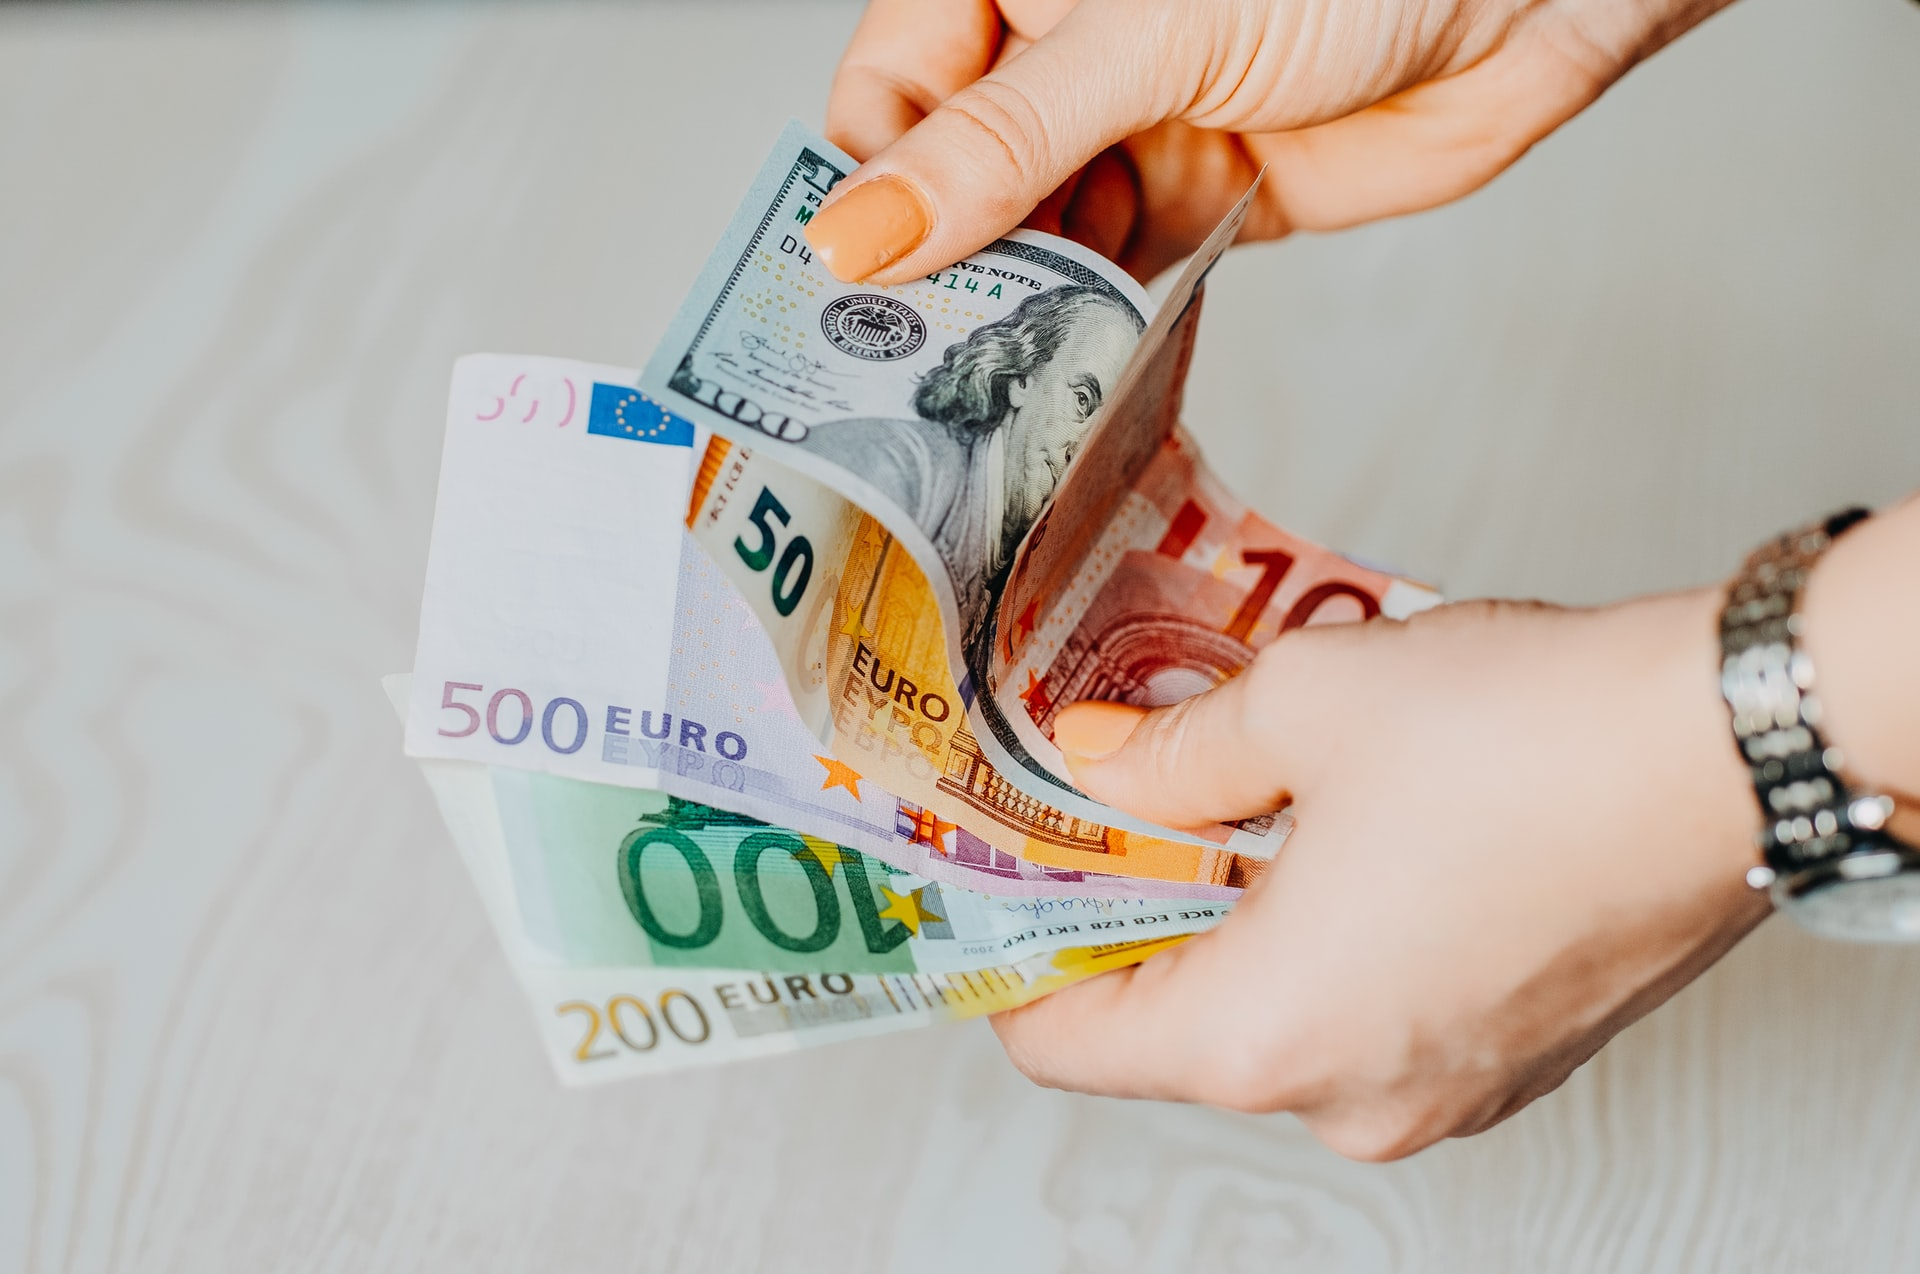 Person holding Euros and dollars